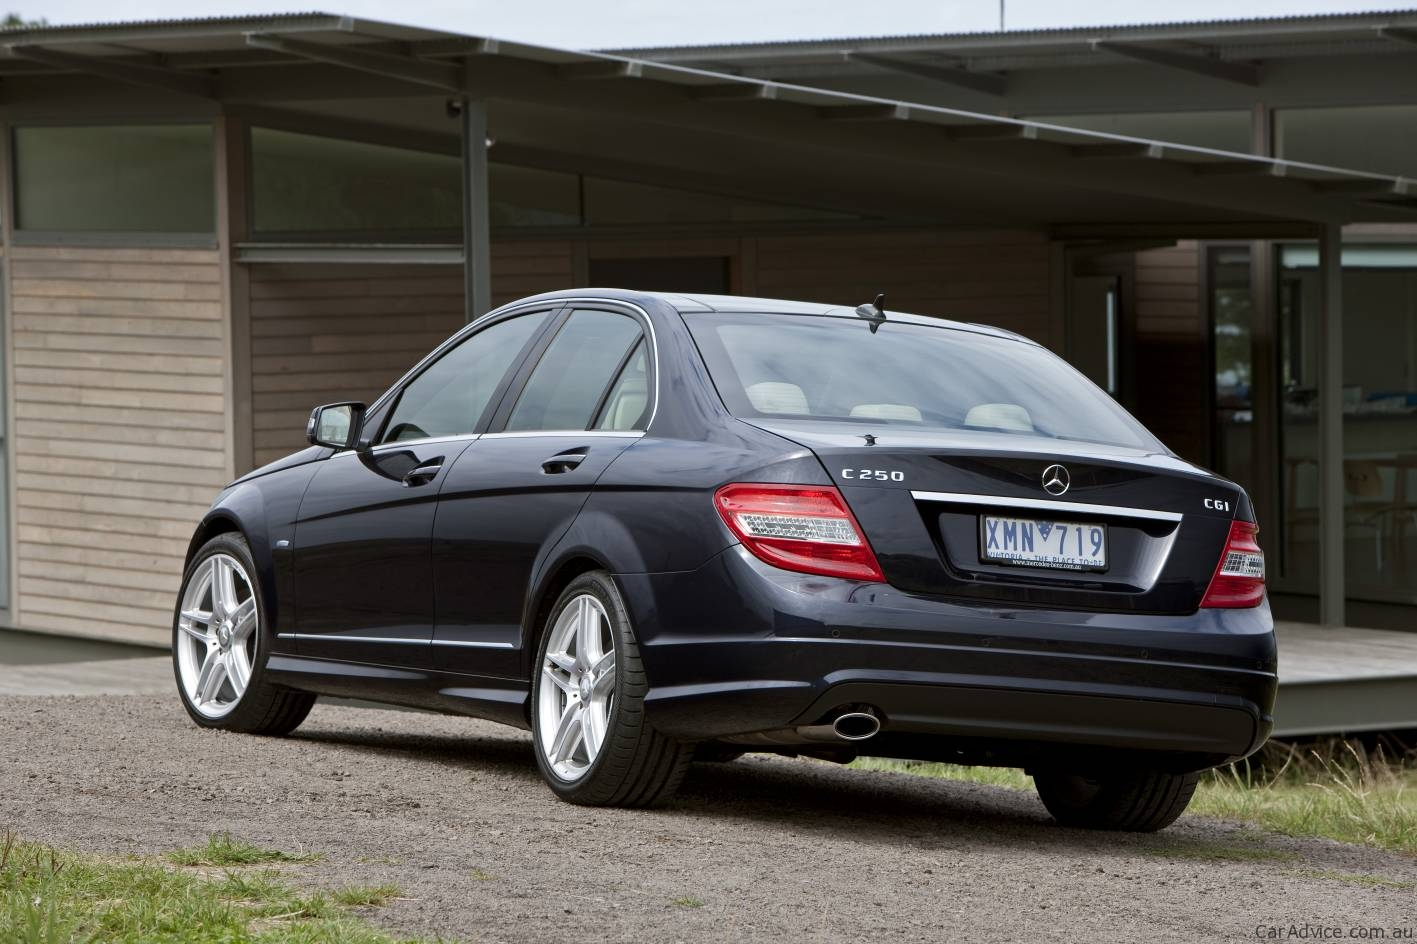 2010 mercedes benz c class range adds value photos. Black Bedroom Furniture Sets. Home Design Ideas